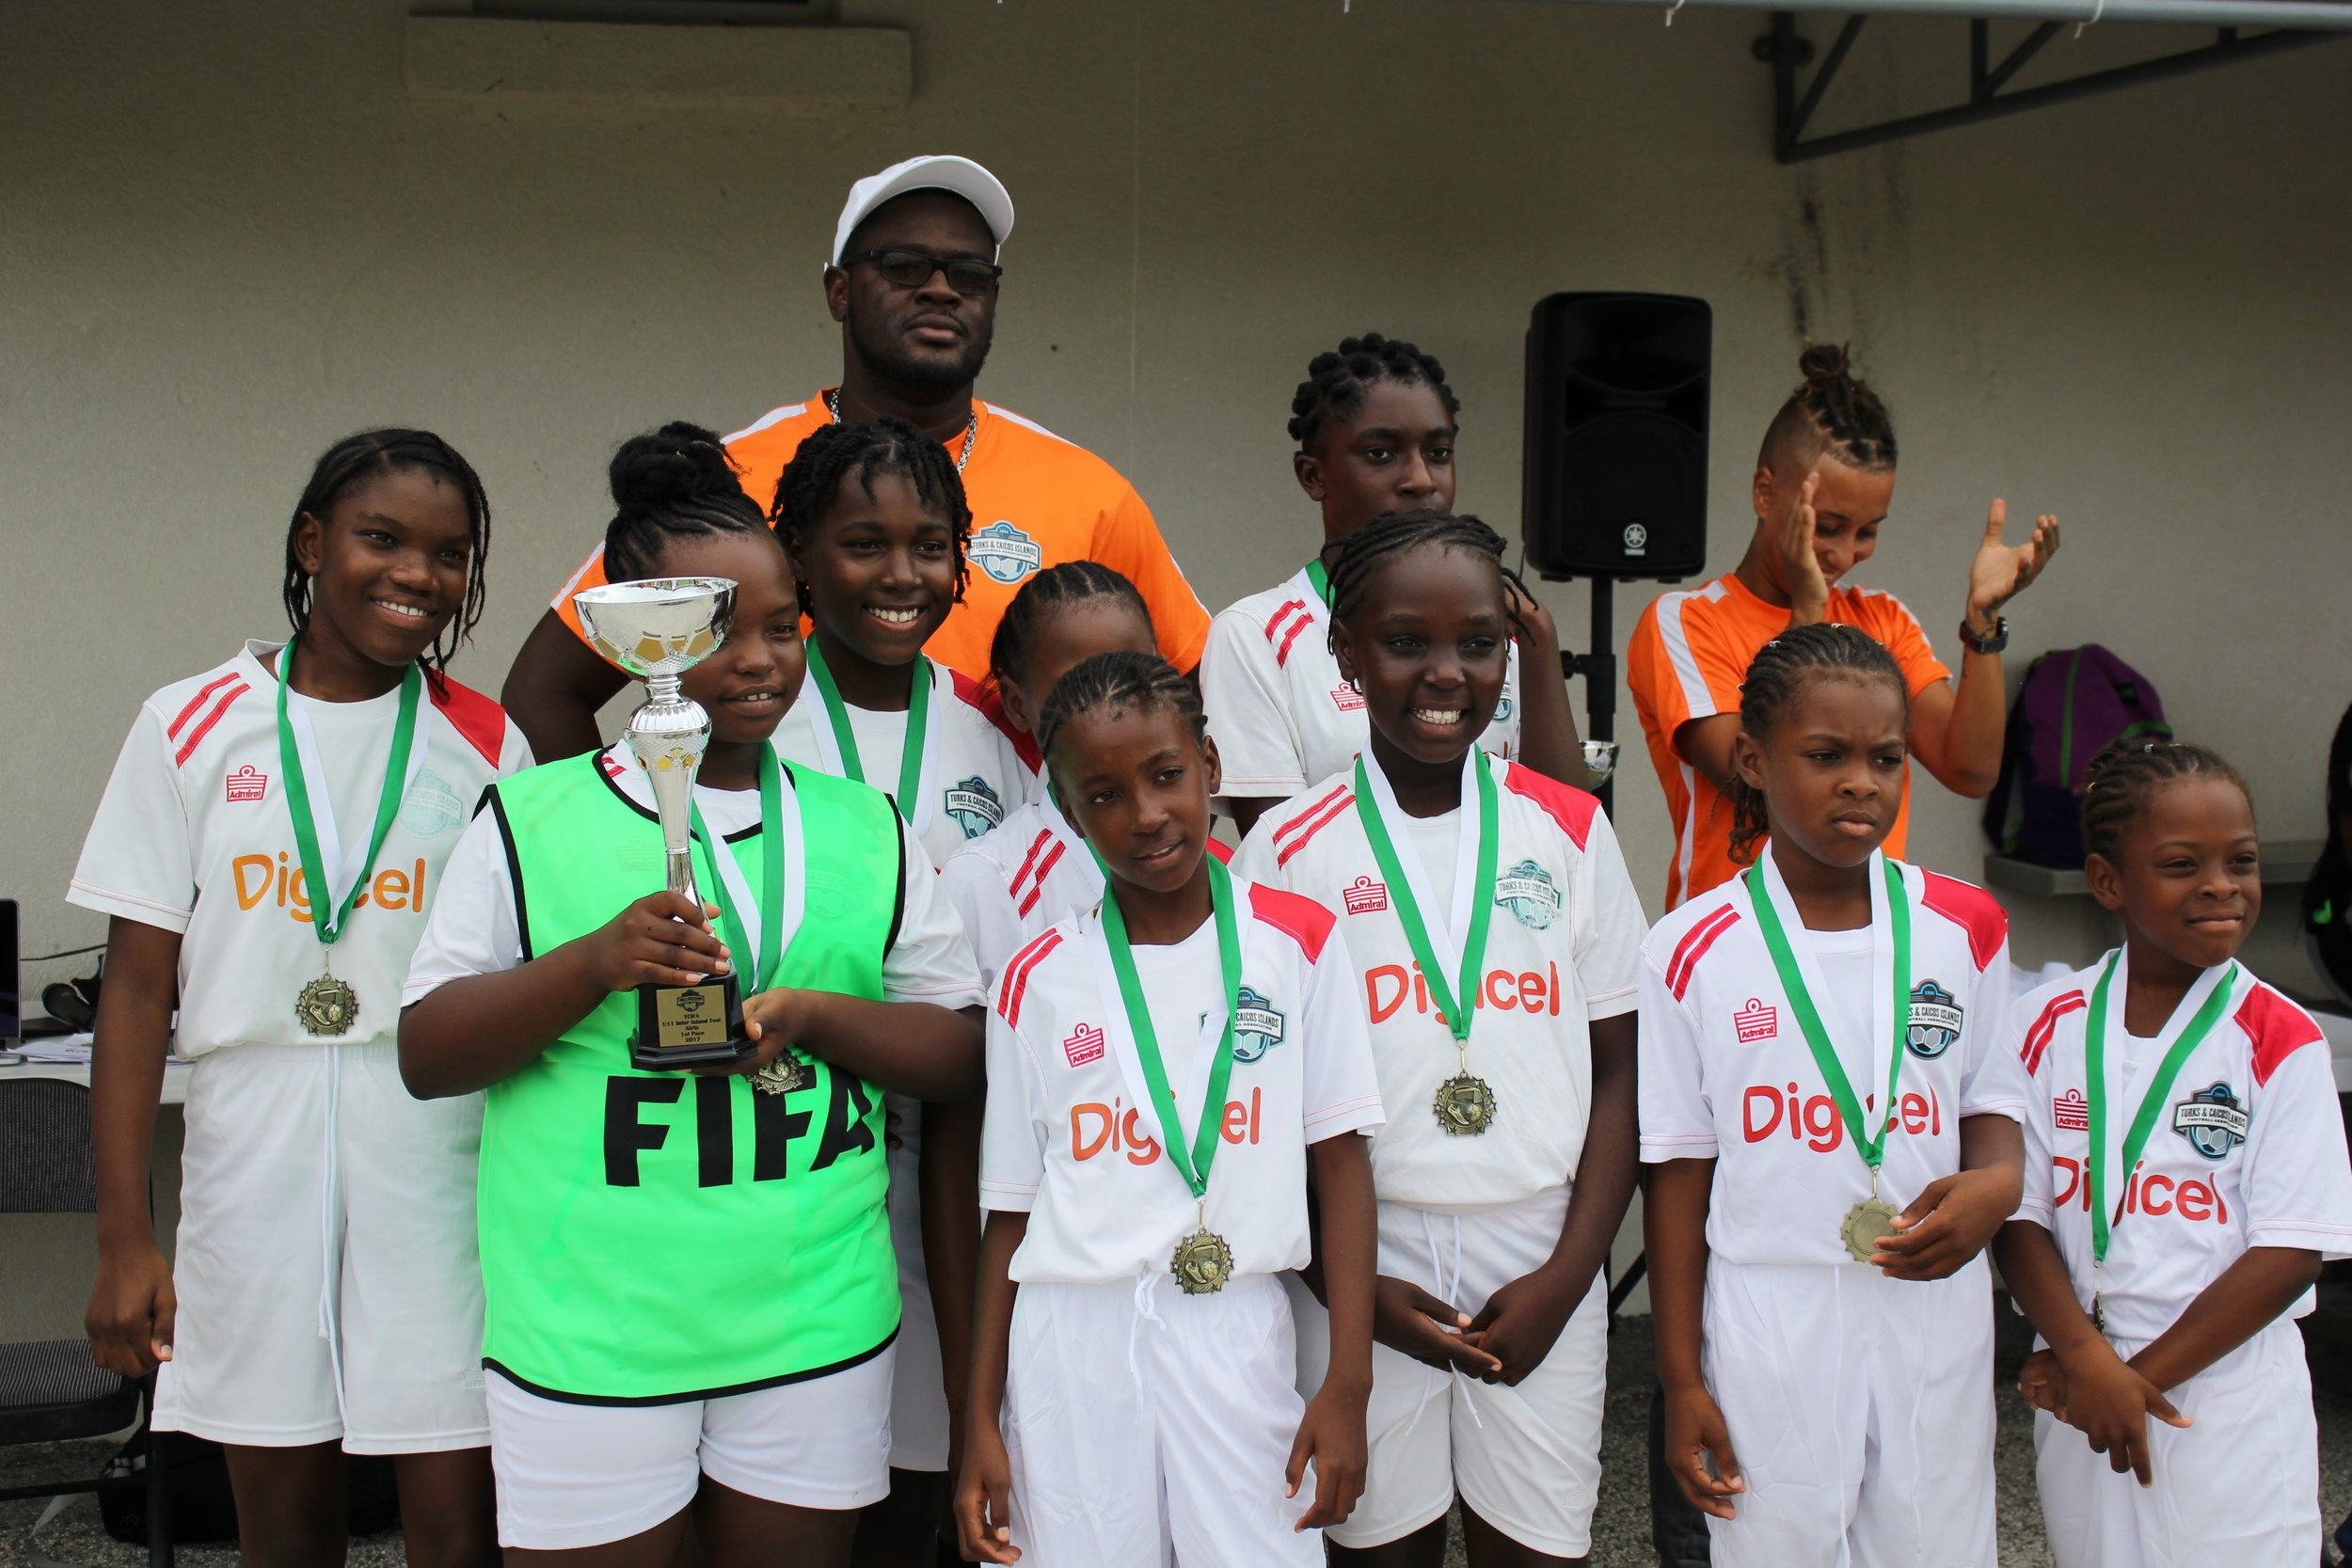 1st place Girls-South Caicos